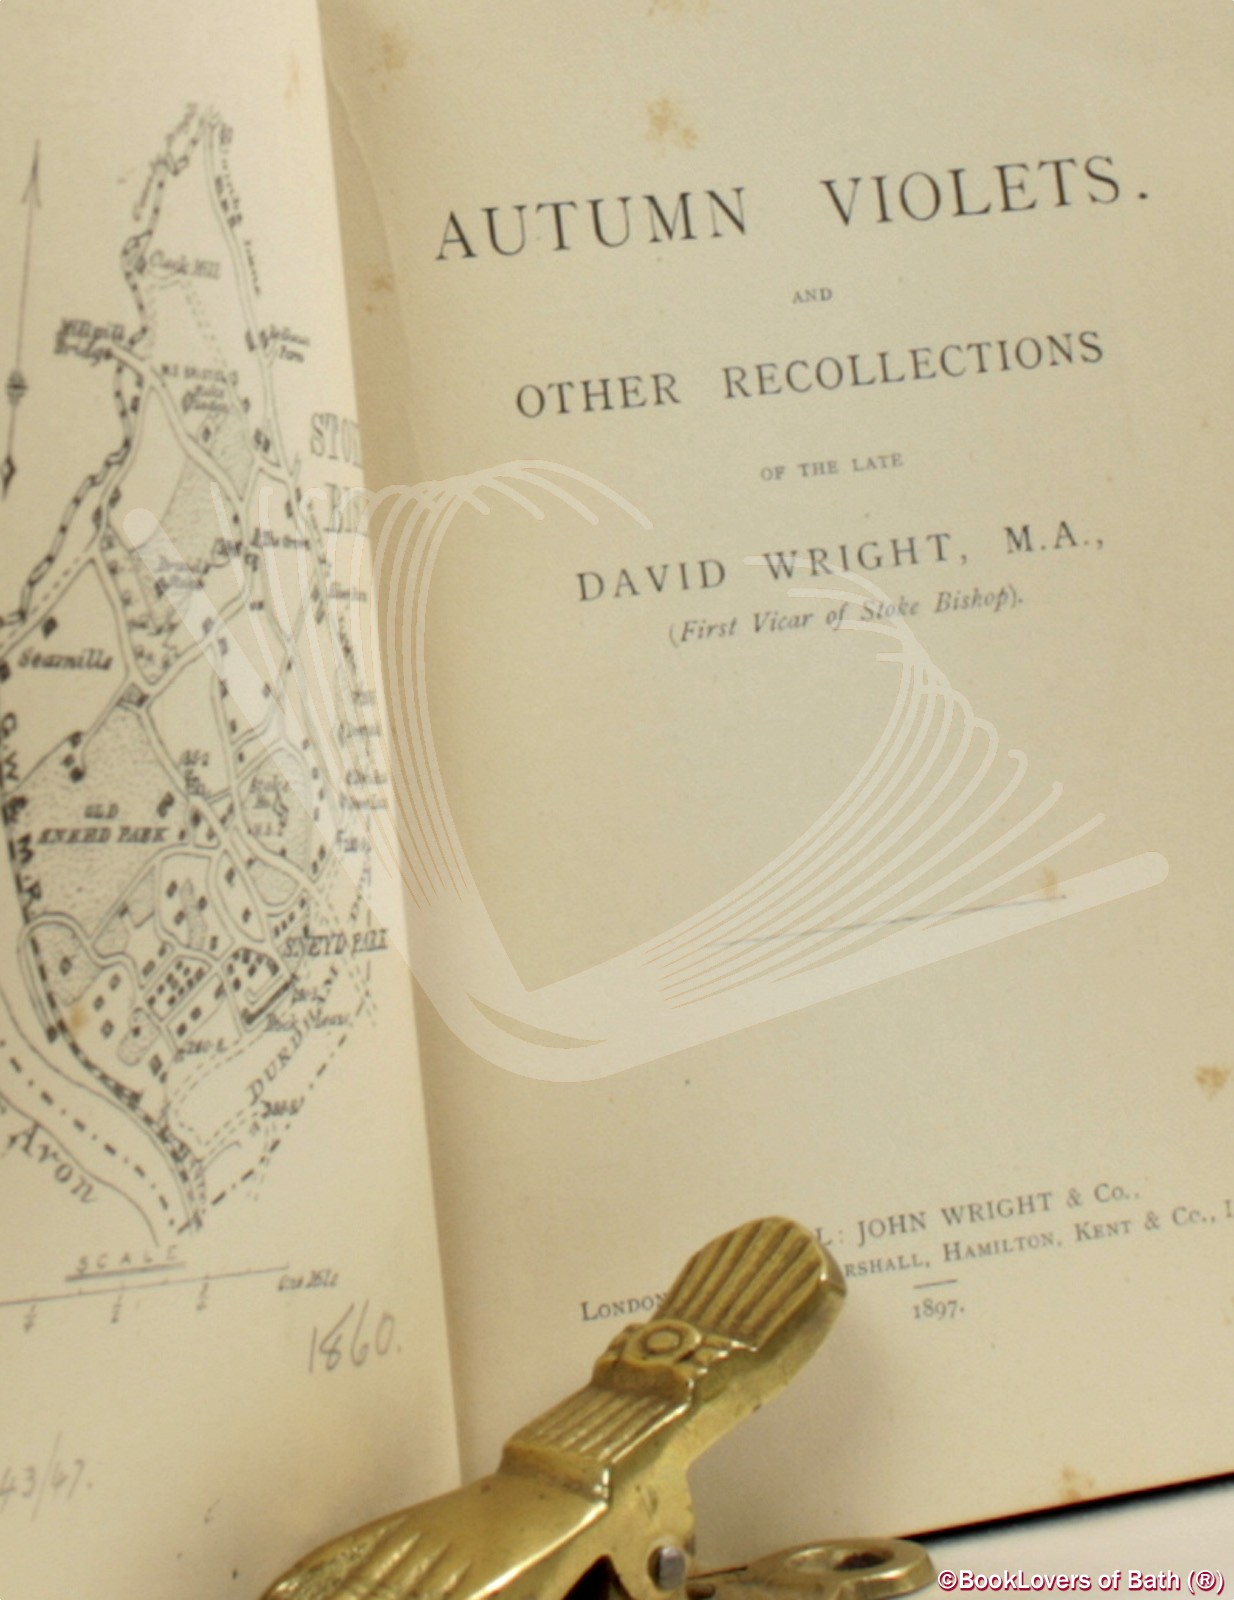 Autumn Violets and Other Recollections: of the Late David Wright, M.A., (First Vicar of Stoke Bishop) - Anon.